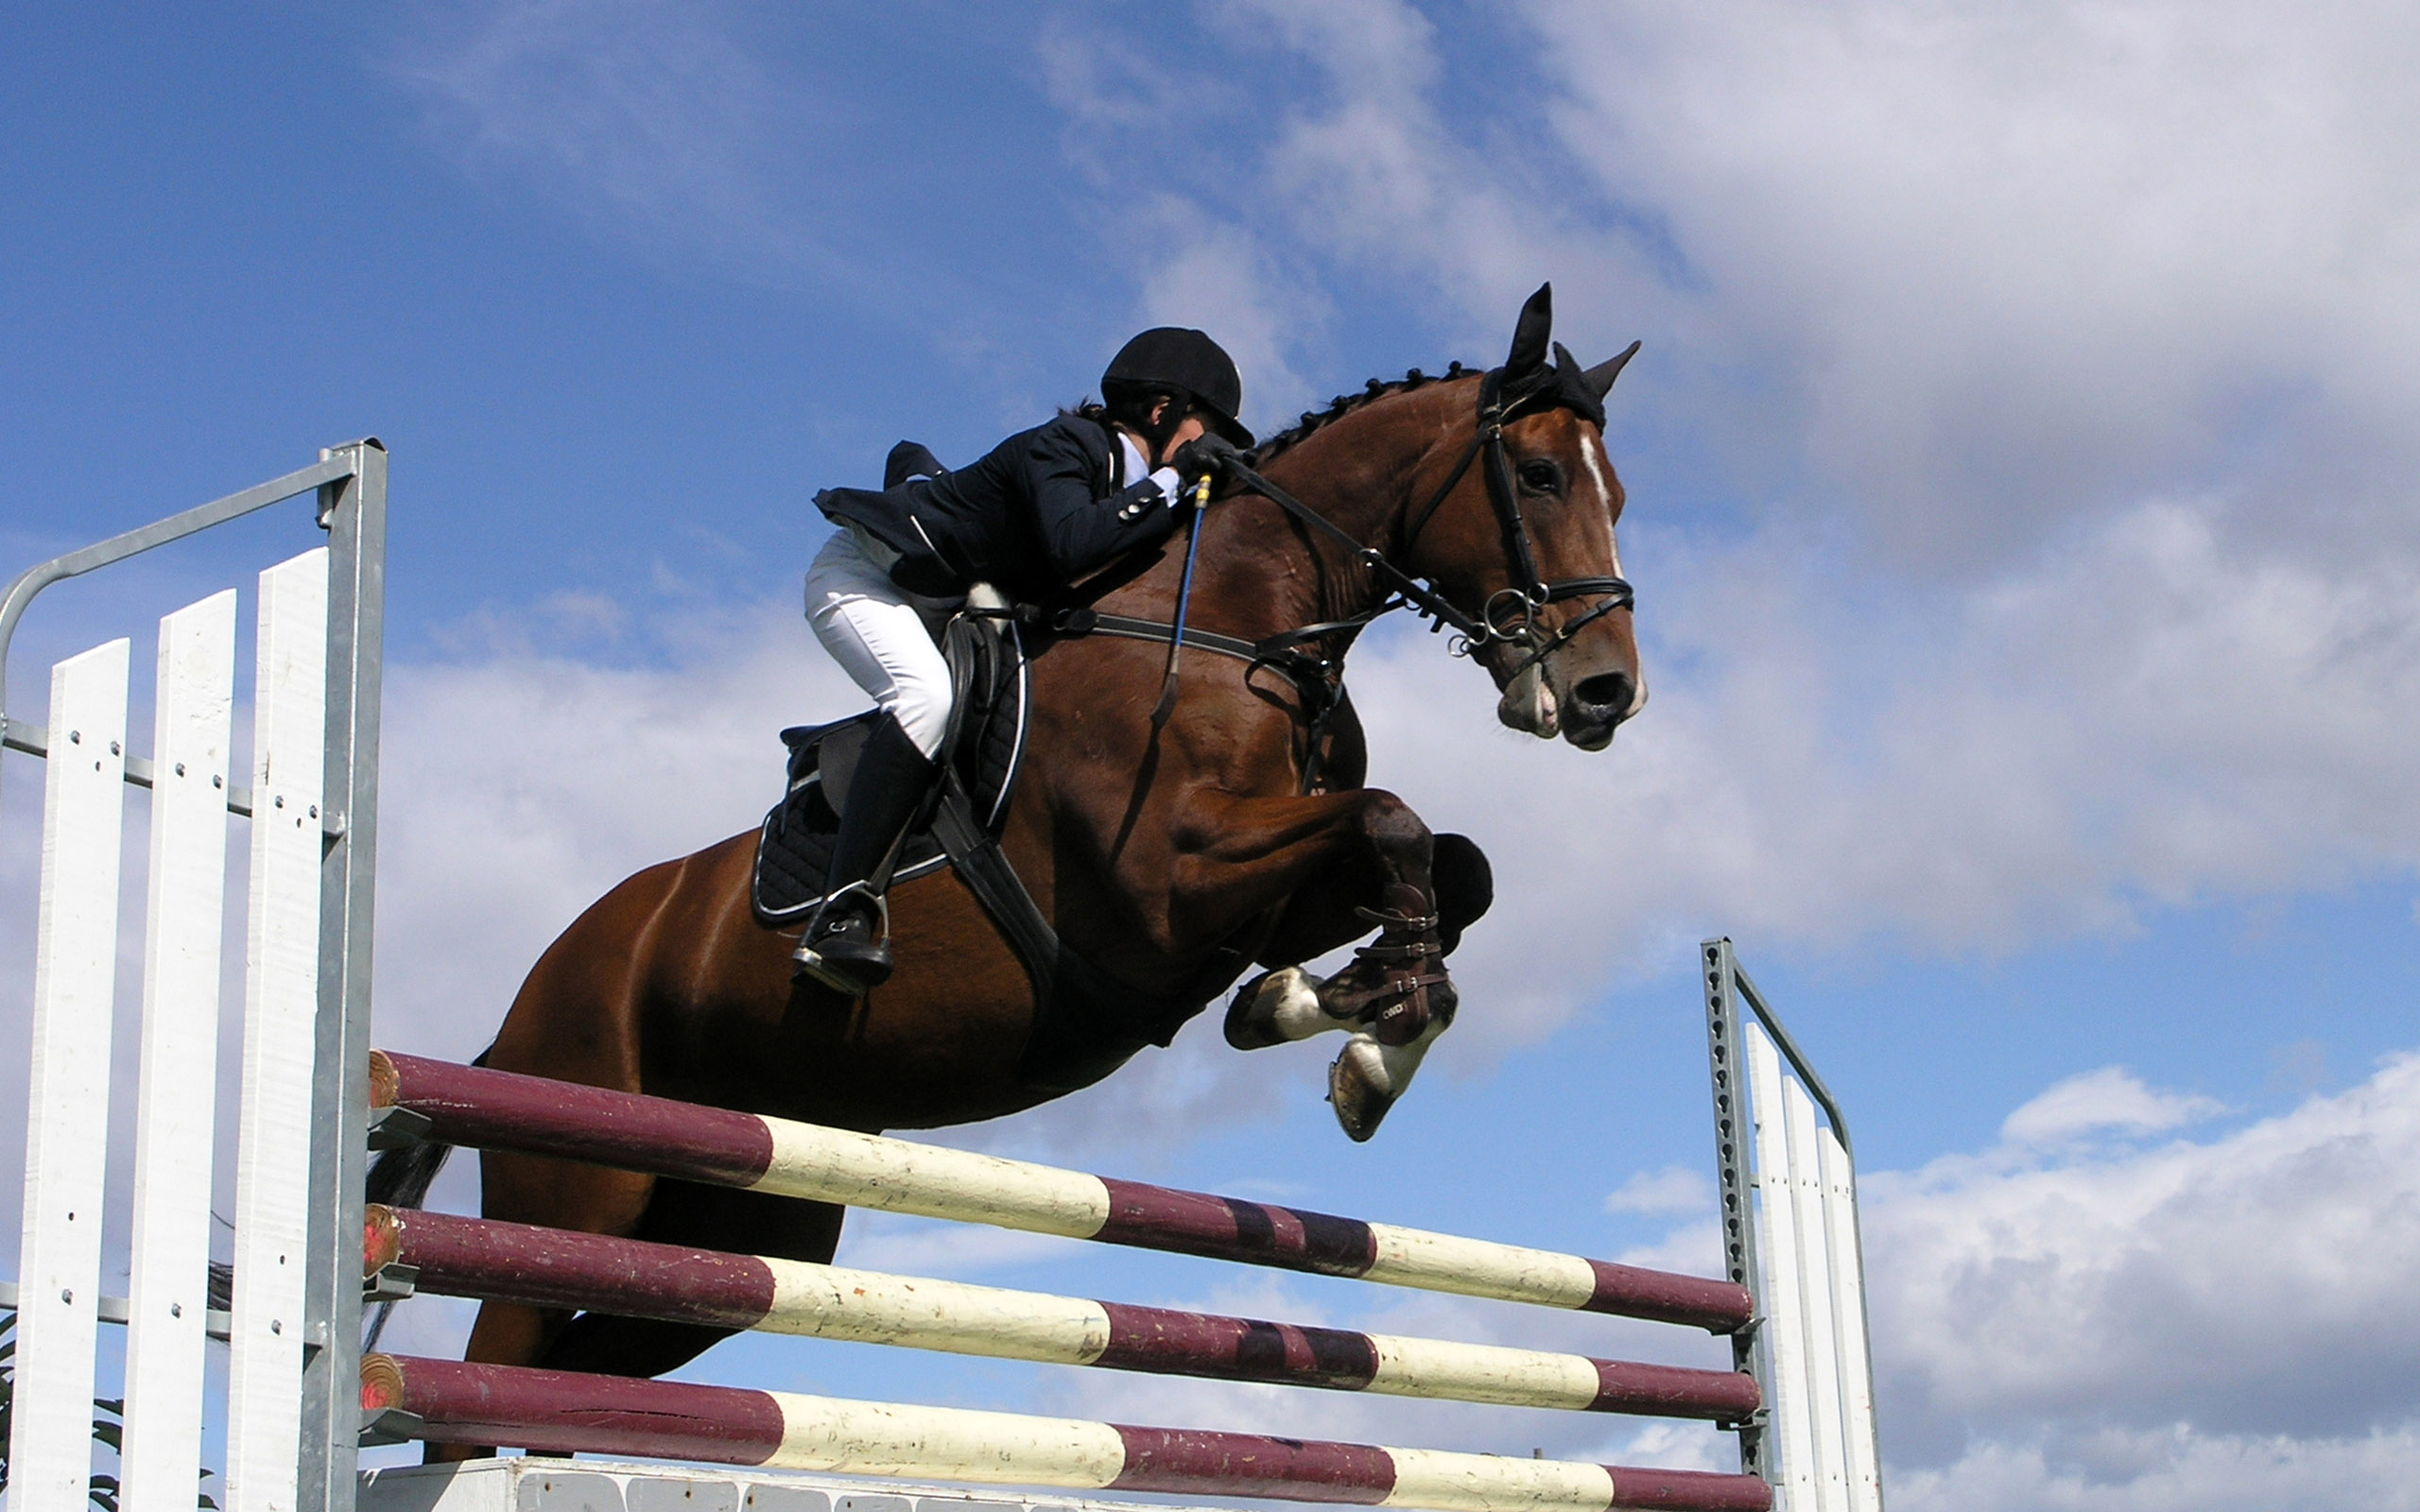 2560x1600 - Show Jumping Wallpapers 8